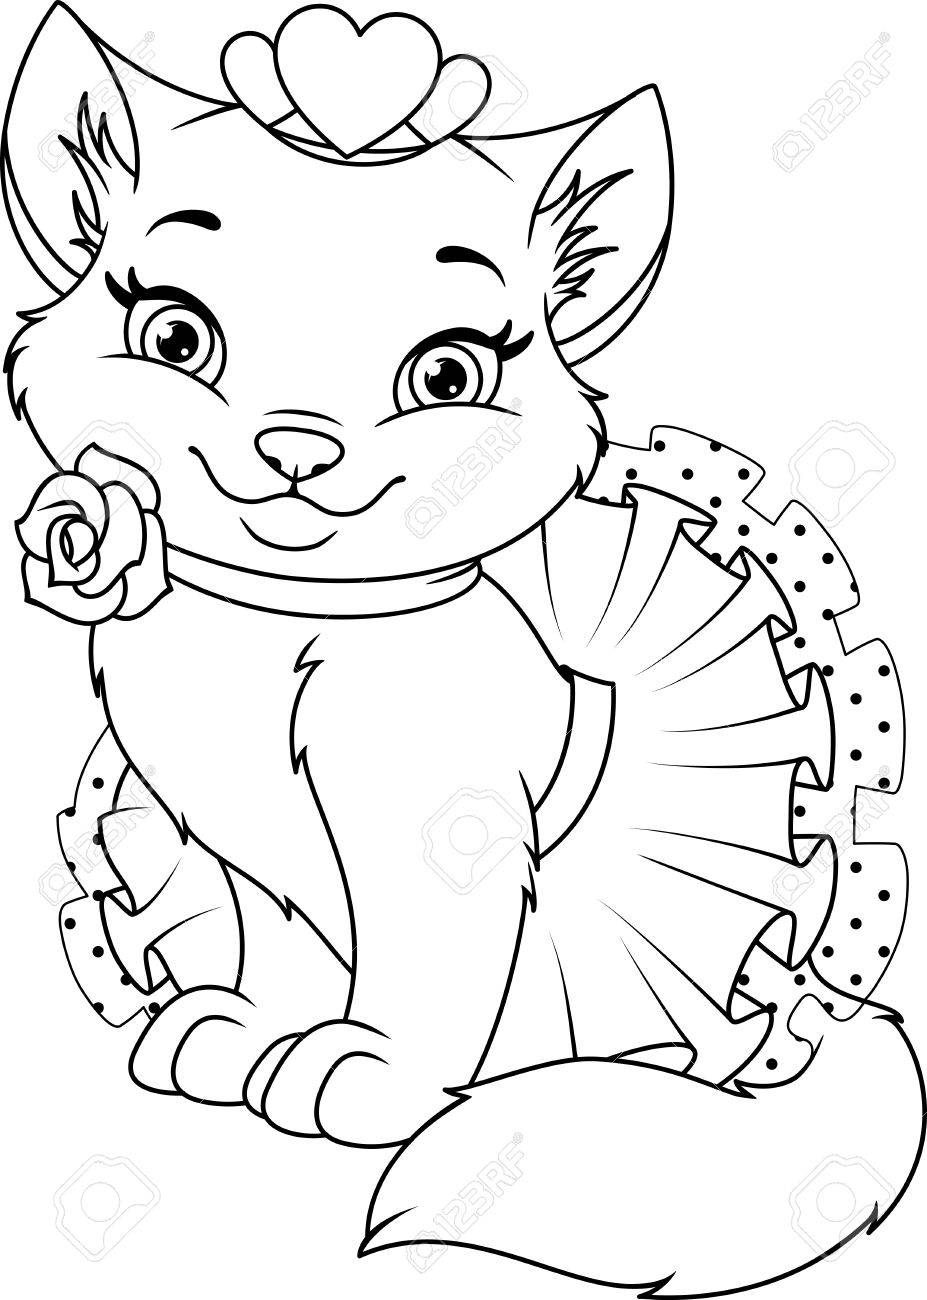 cat princess coloring page royalty free cliparts vectors and stock